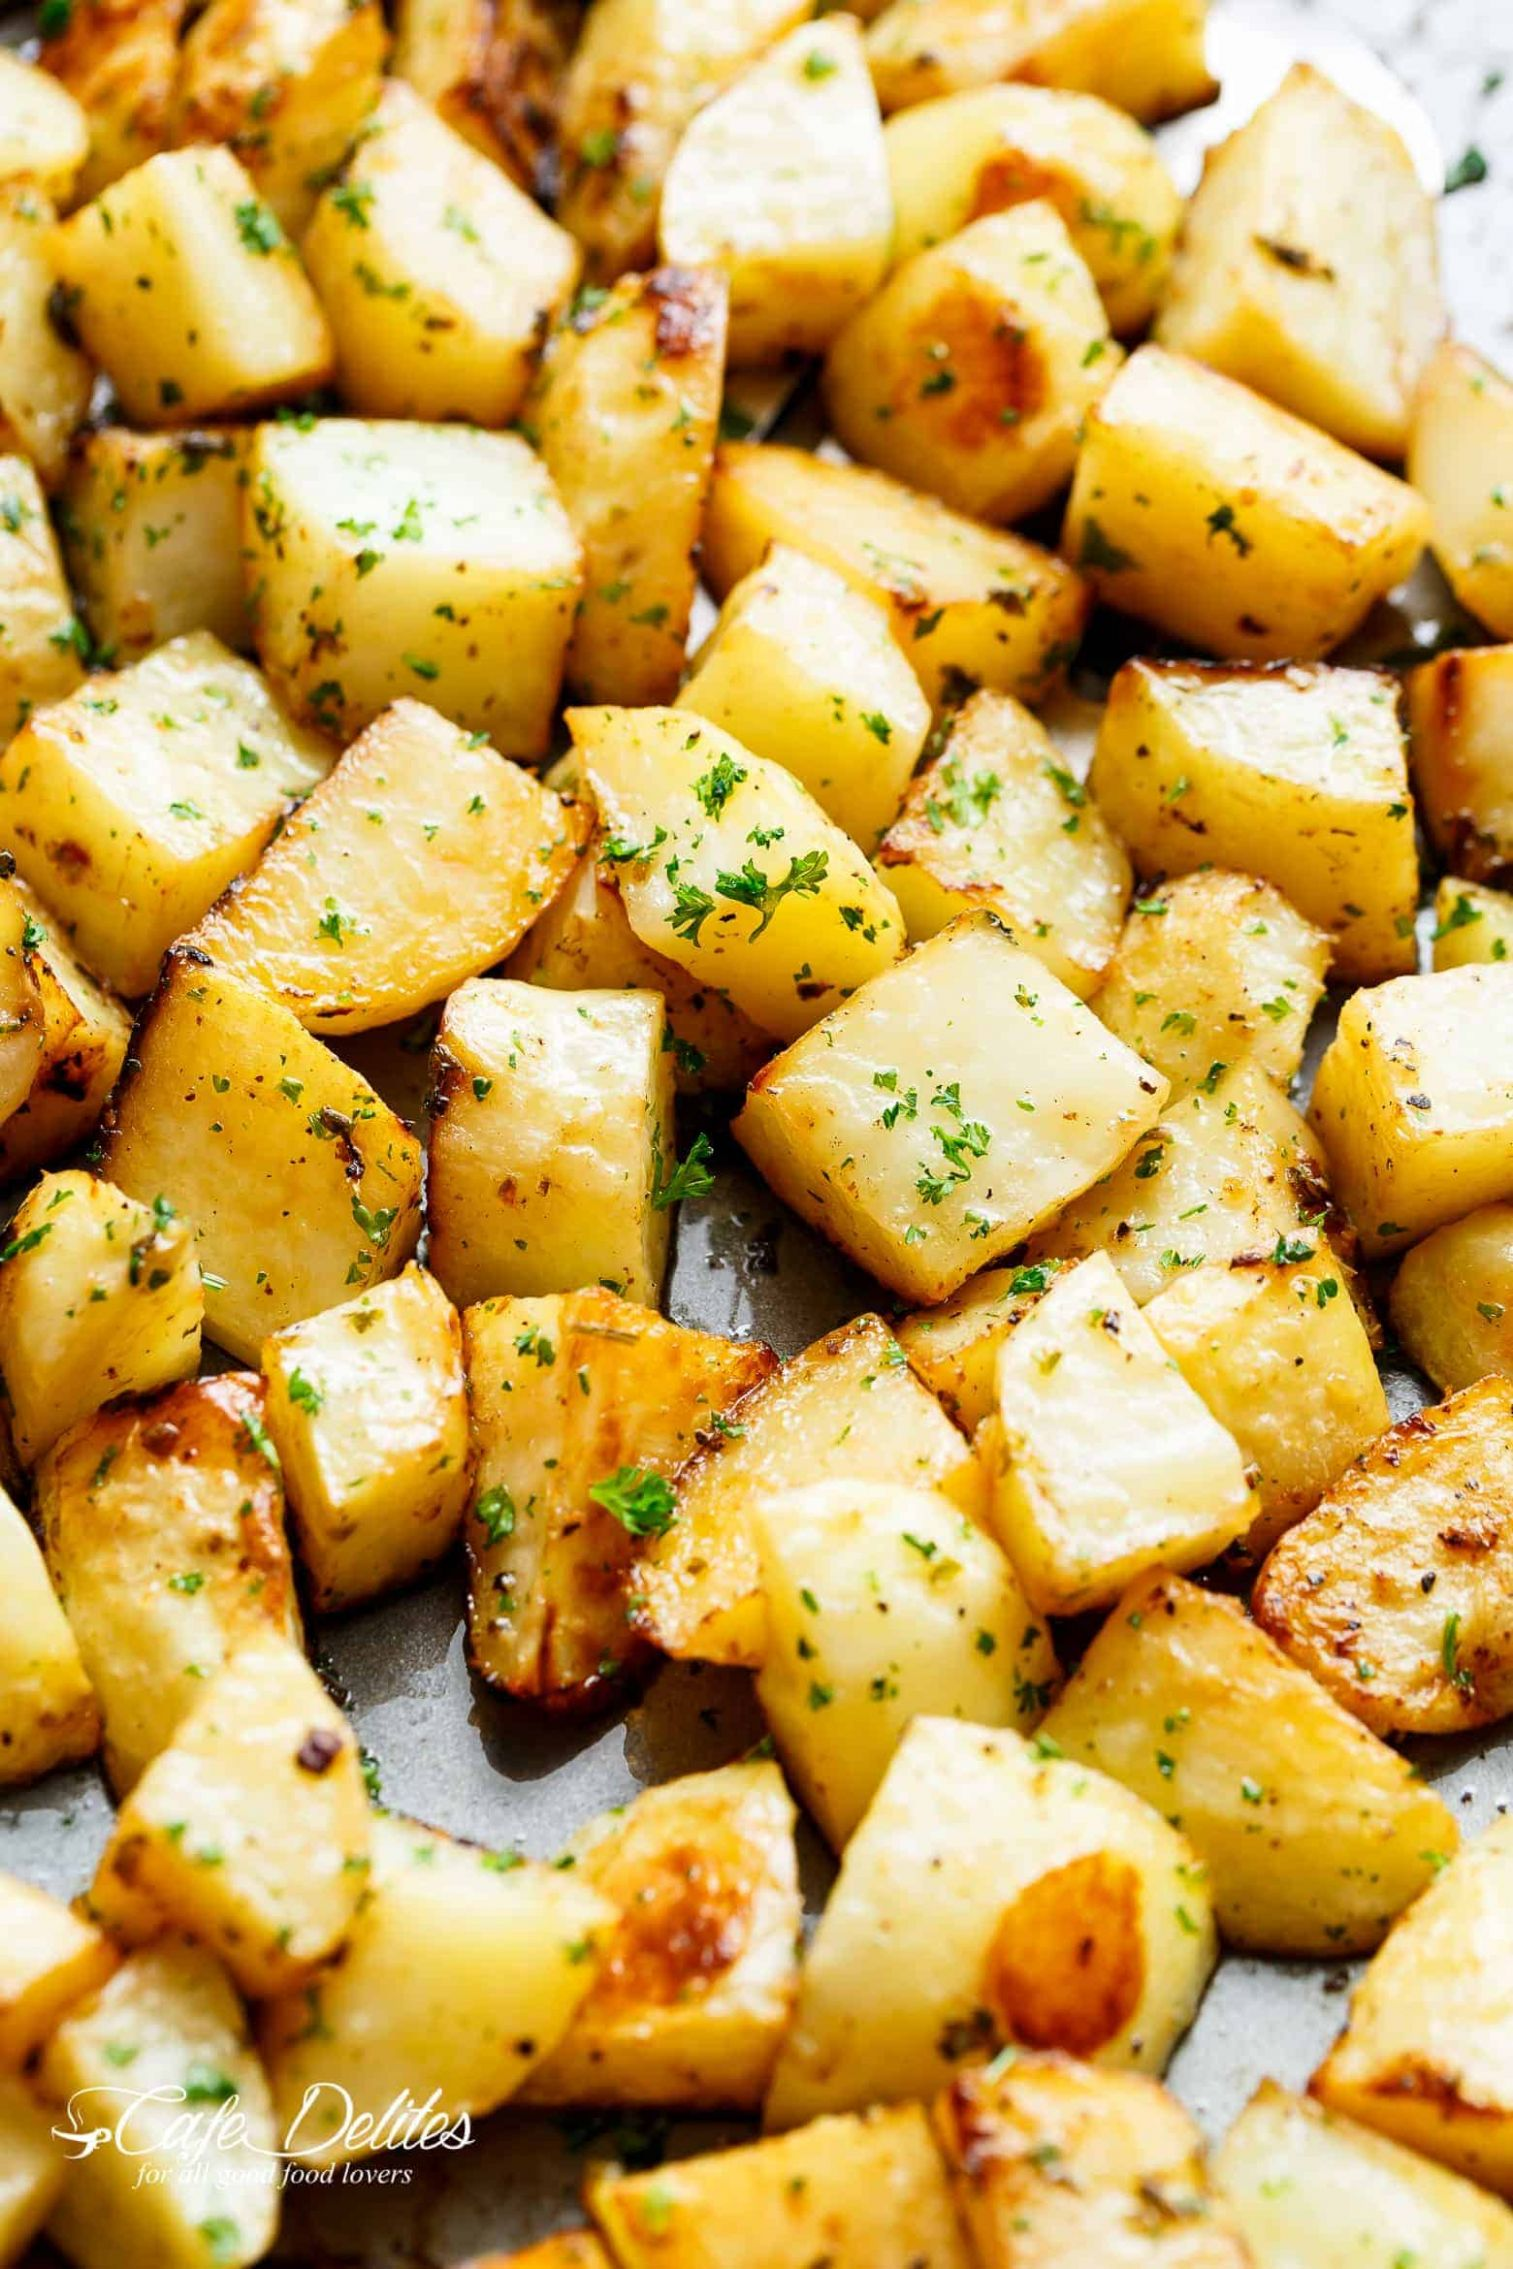 Crispy Garlic Roasted Potatoes - Cafe Delites